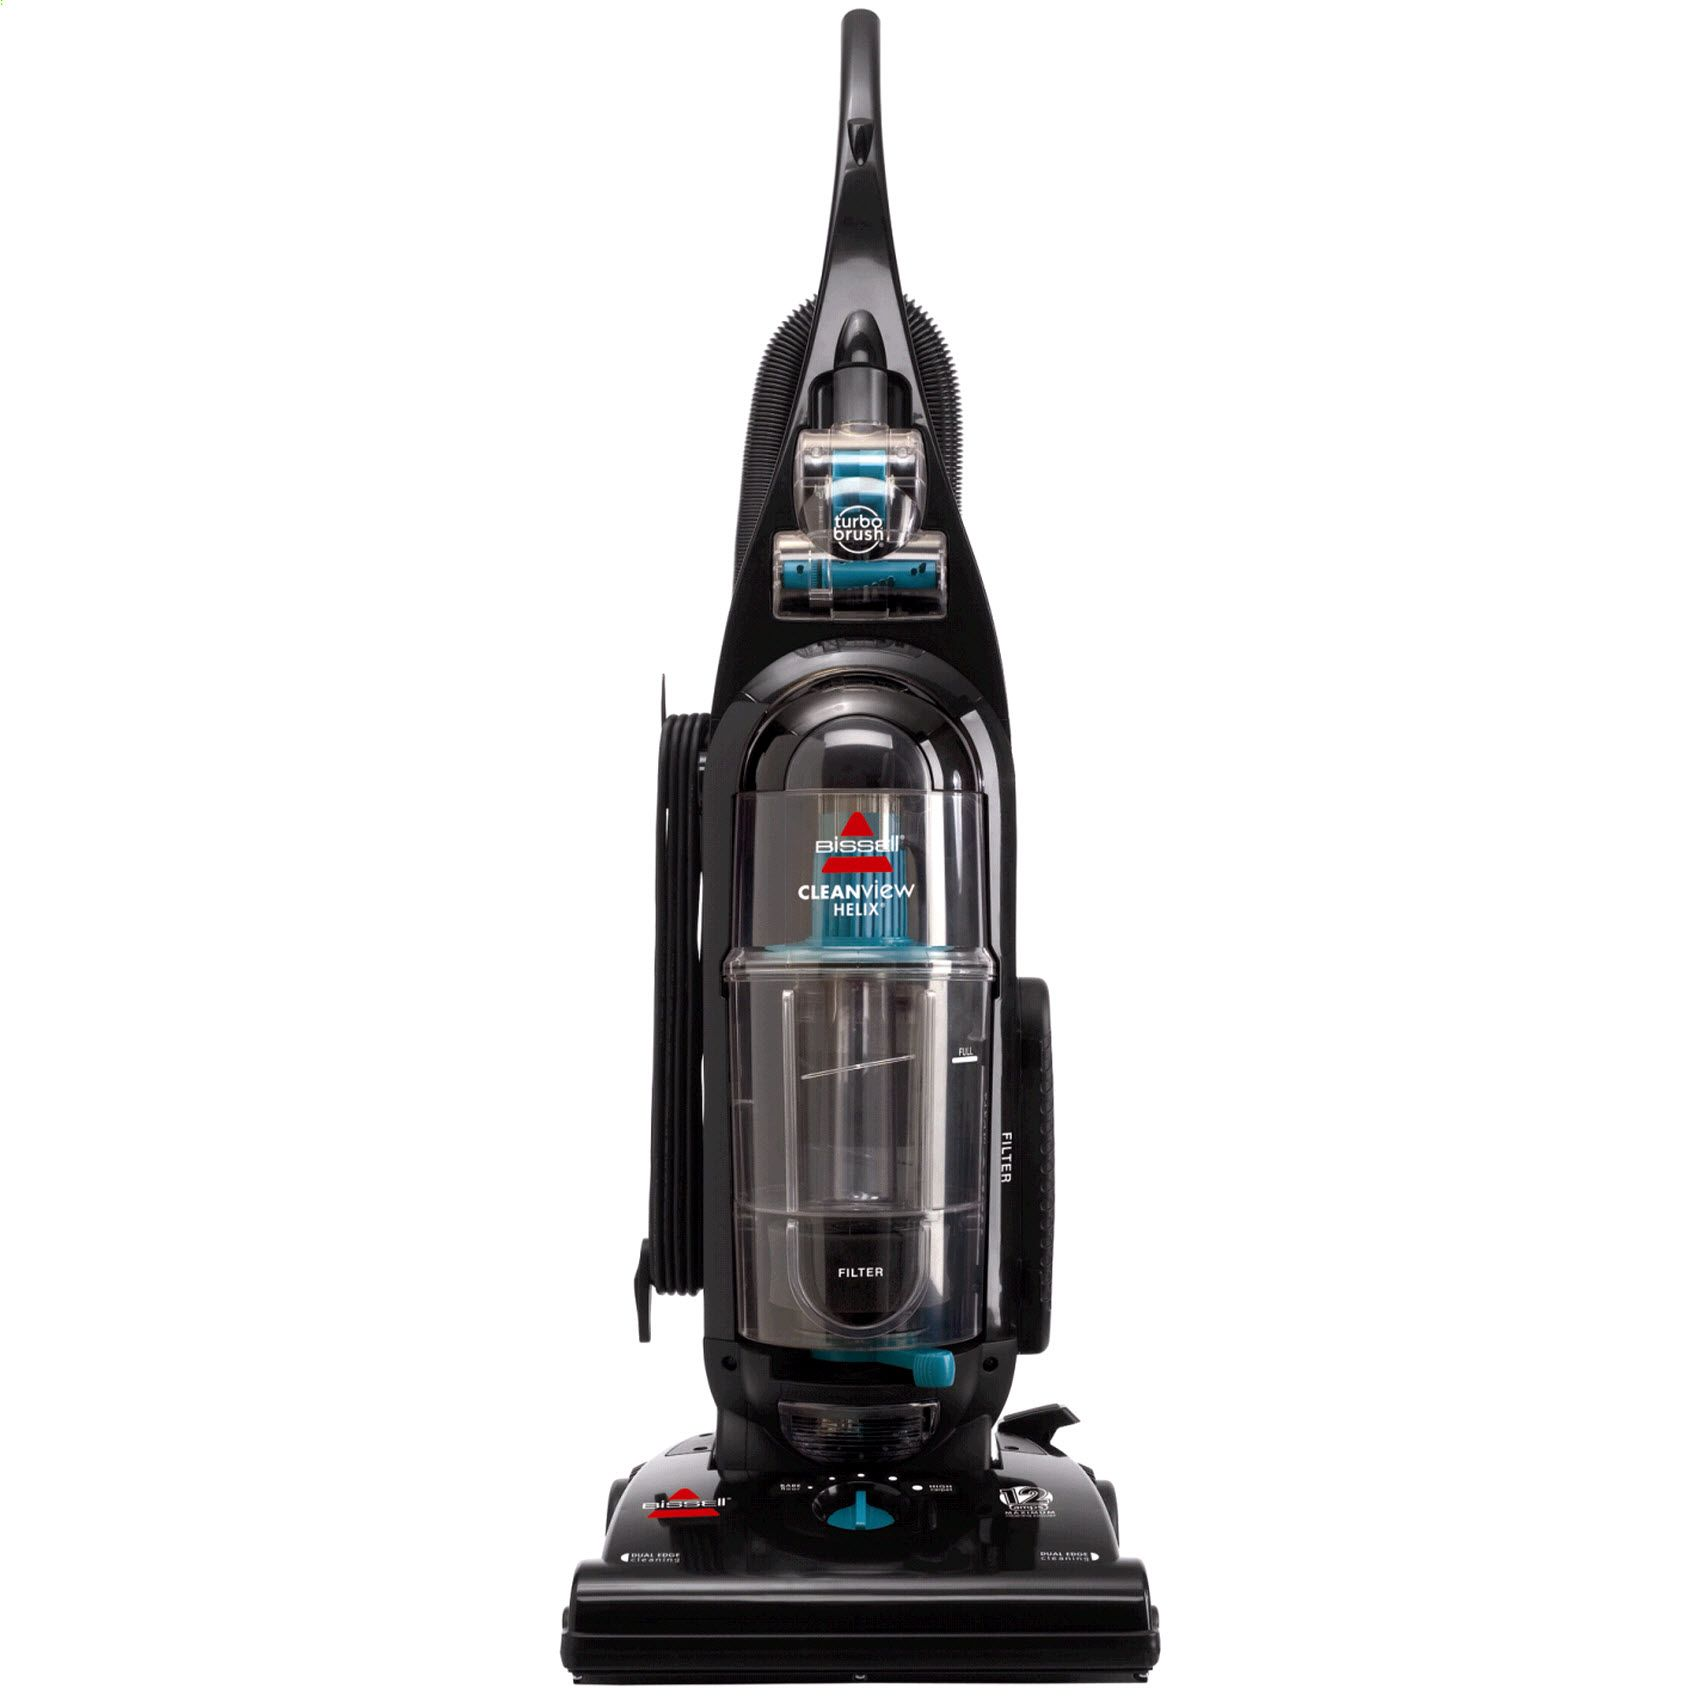 Bissell 82h1 Cleanview Helix Bagless Upright Vacuum